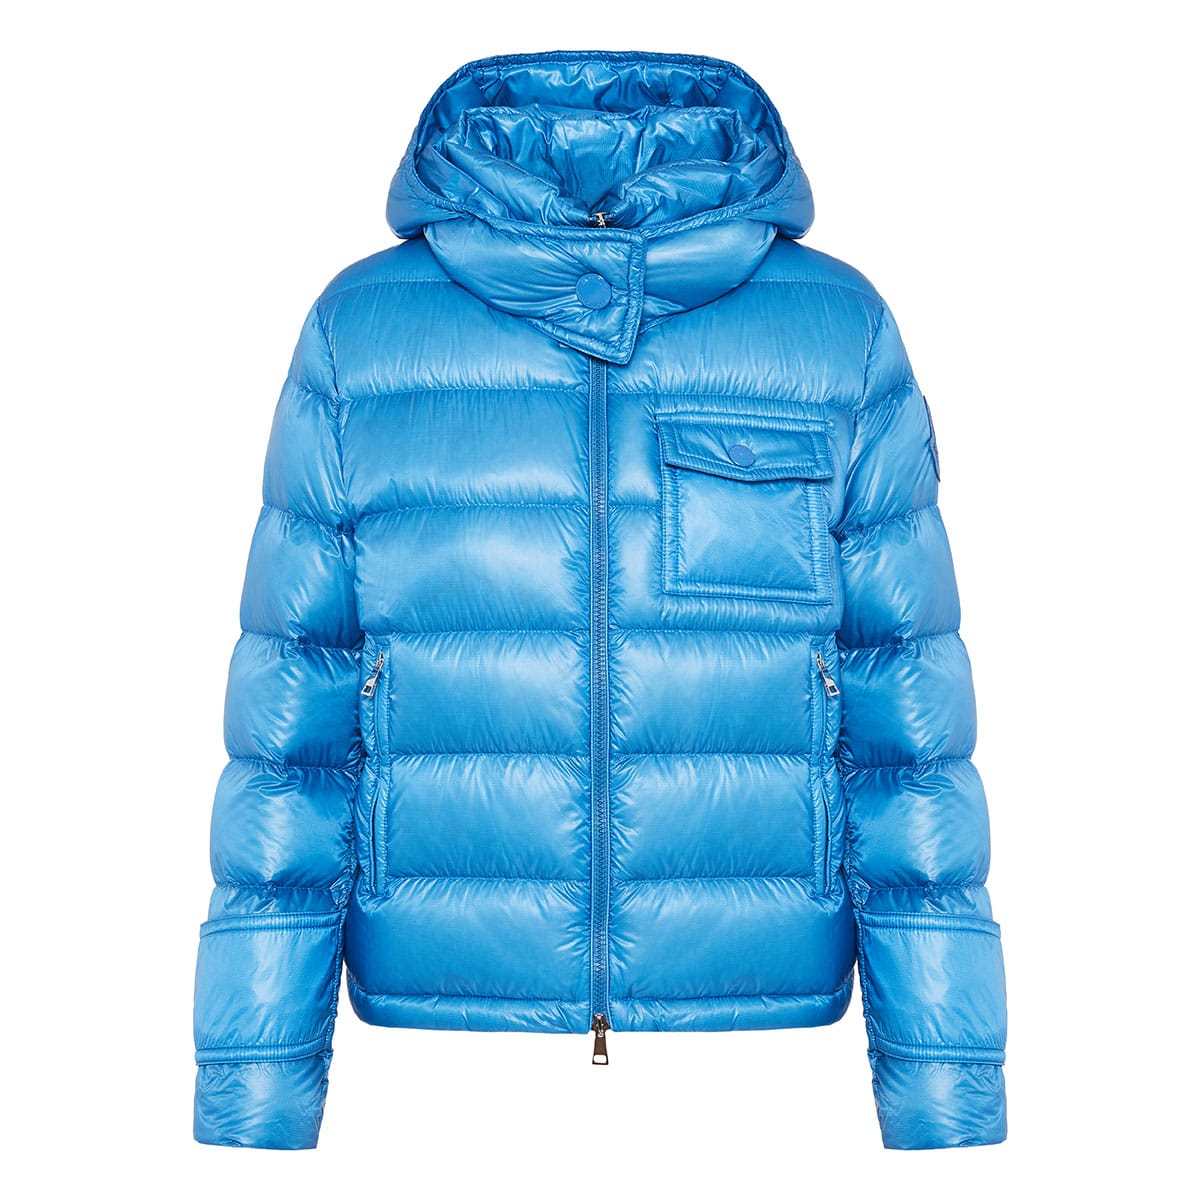 Turquin quilted puffer jacket